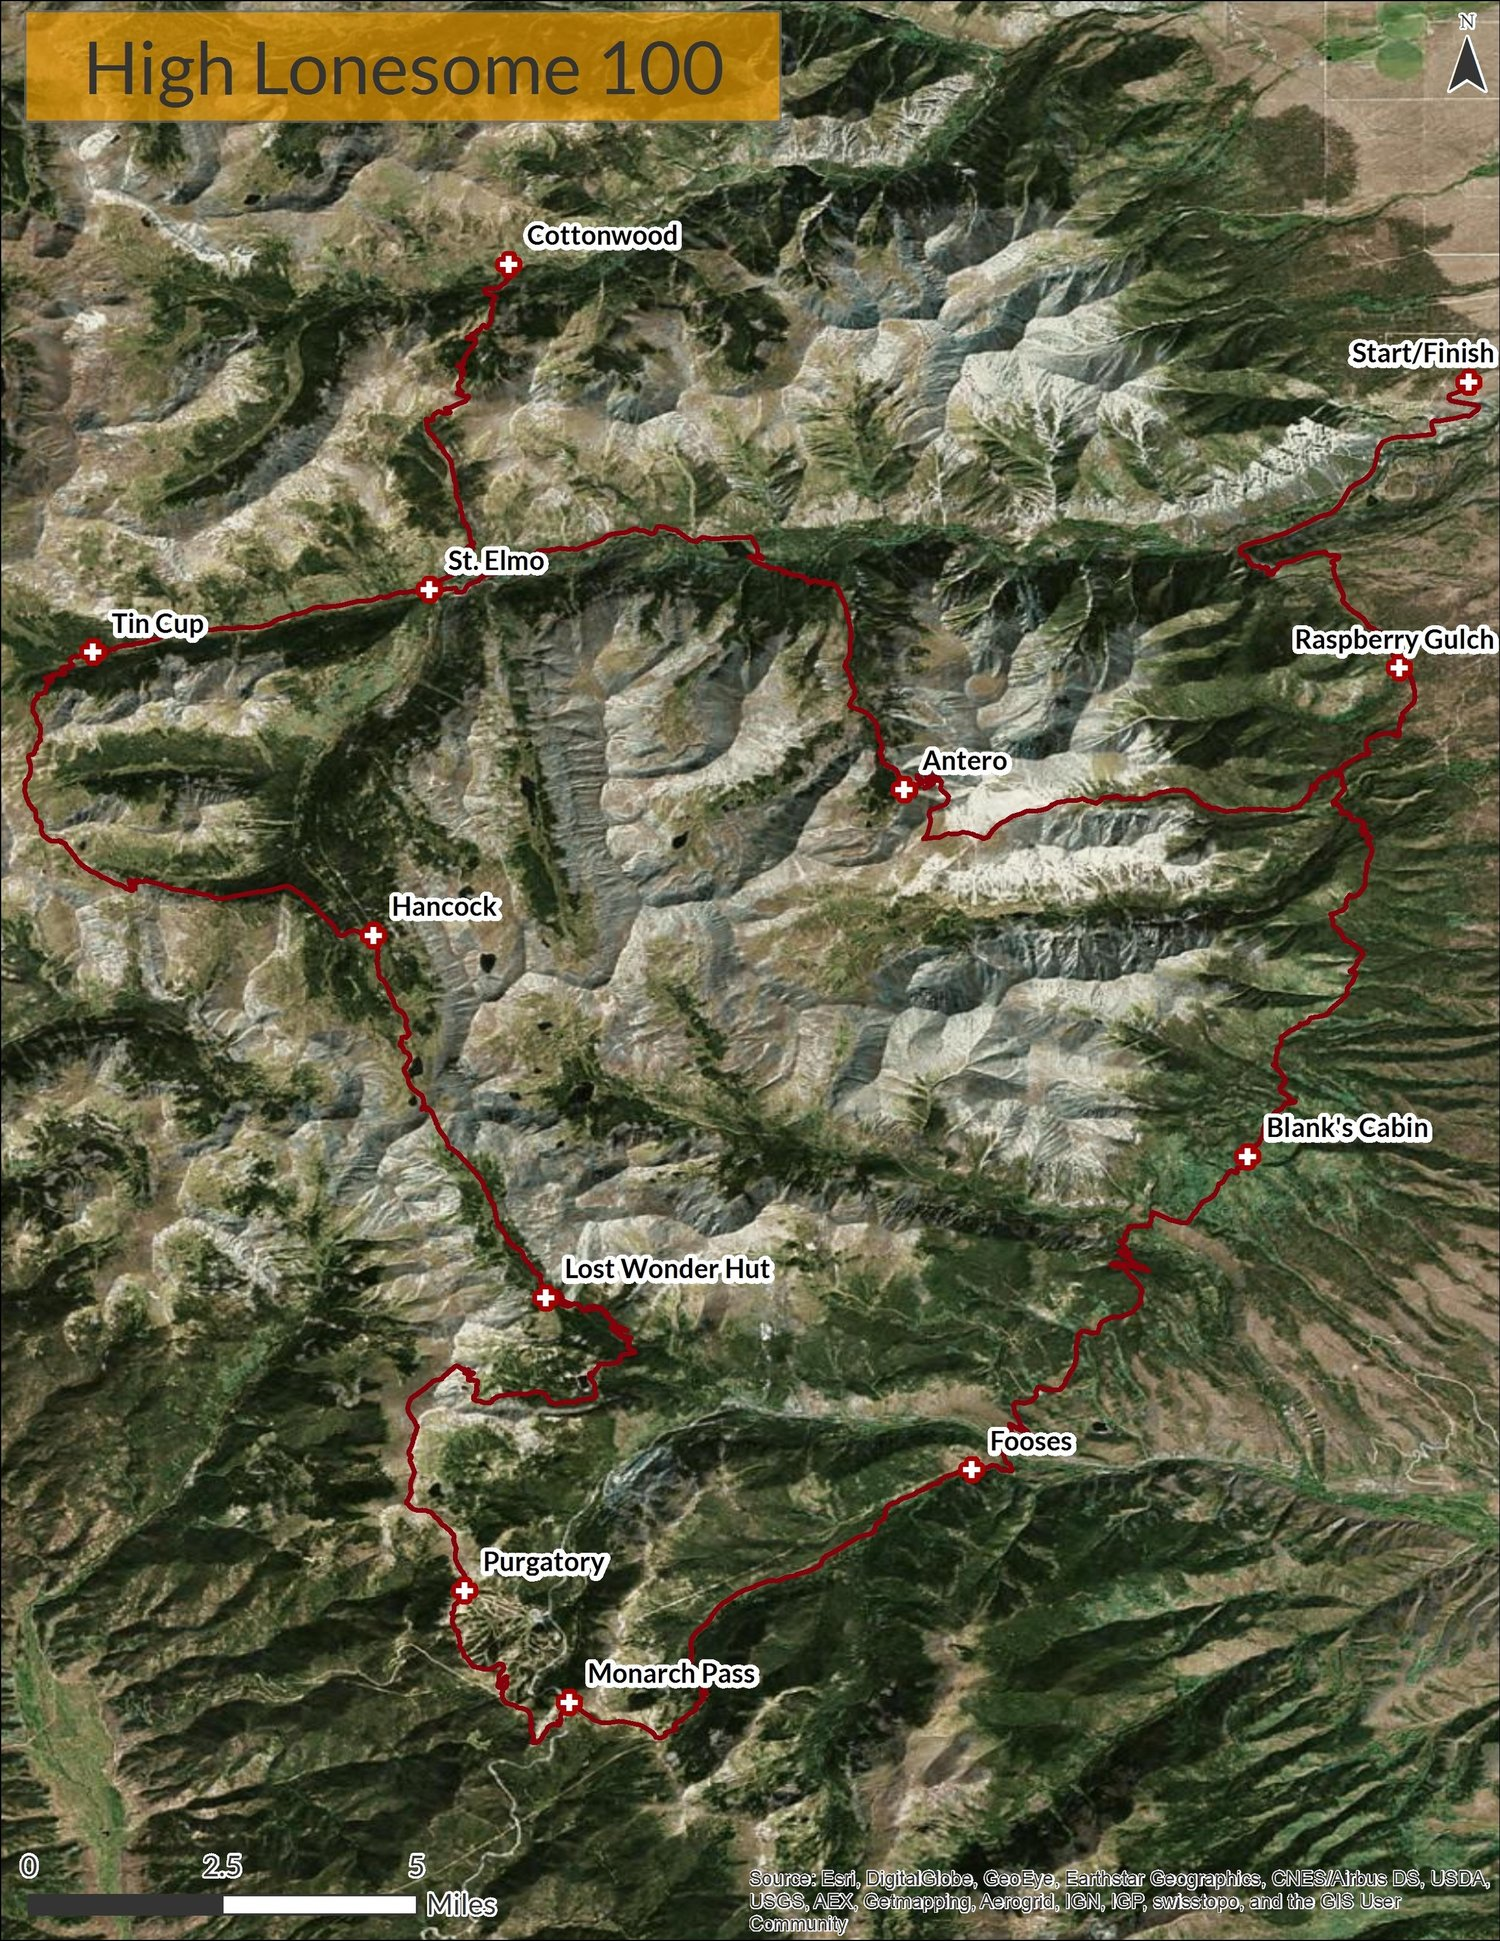 HL100+course+map+2019.jpg